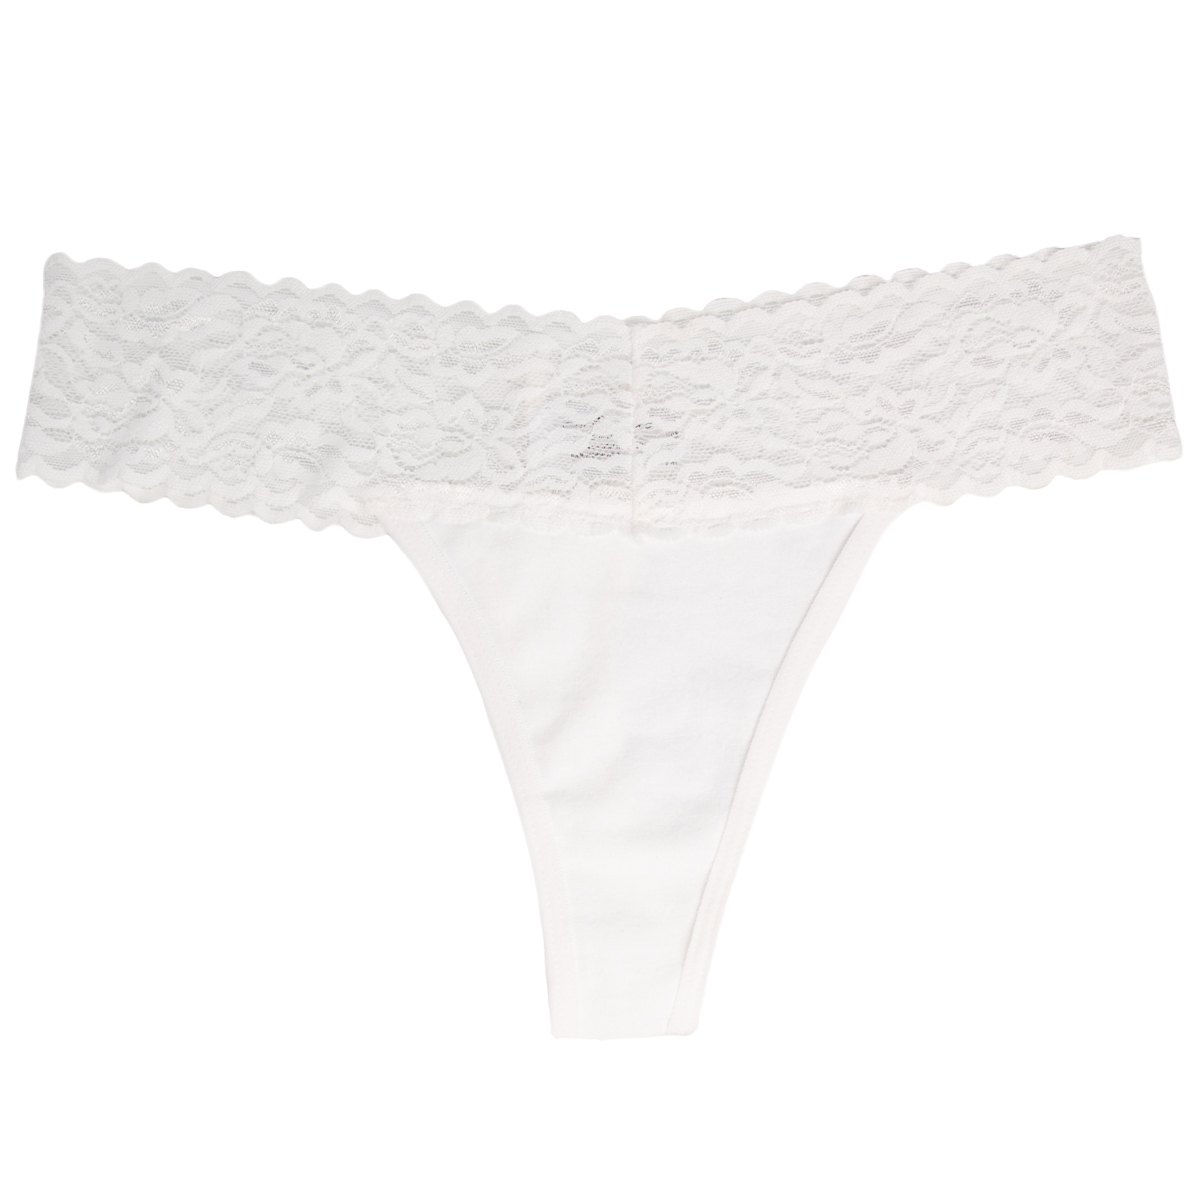 6-Pack-Cotton-Lace-Thong-Underwear-For-Women-Soft-Sexy-Lingerie-Panties-Thongs thumbnail 30